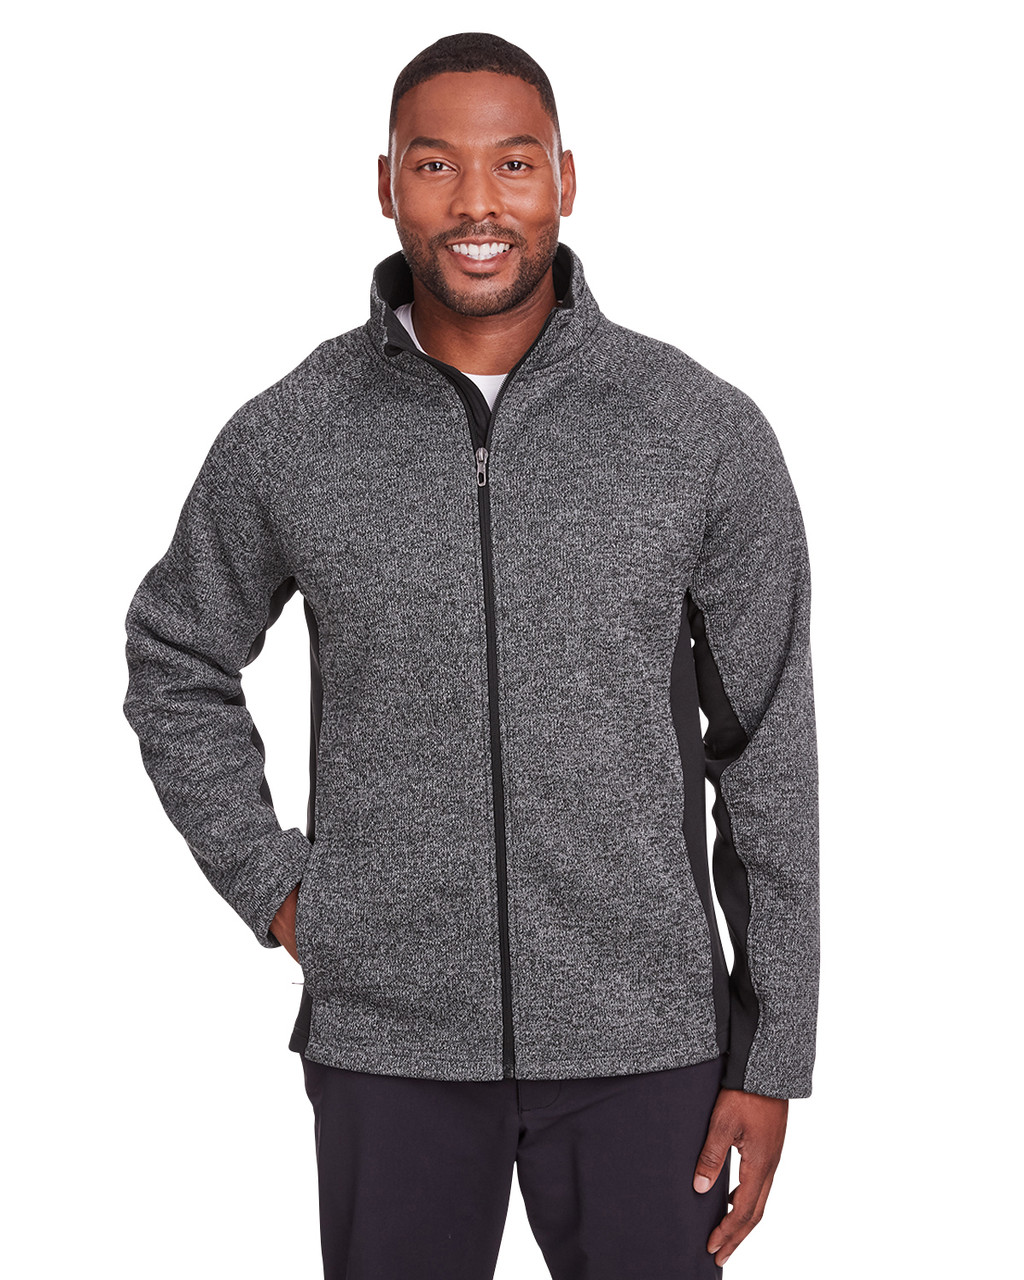 Black Heather/ Black - 187330 Spyder Constant Full-Zip Sweater | BlankClothing.ca